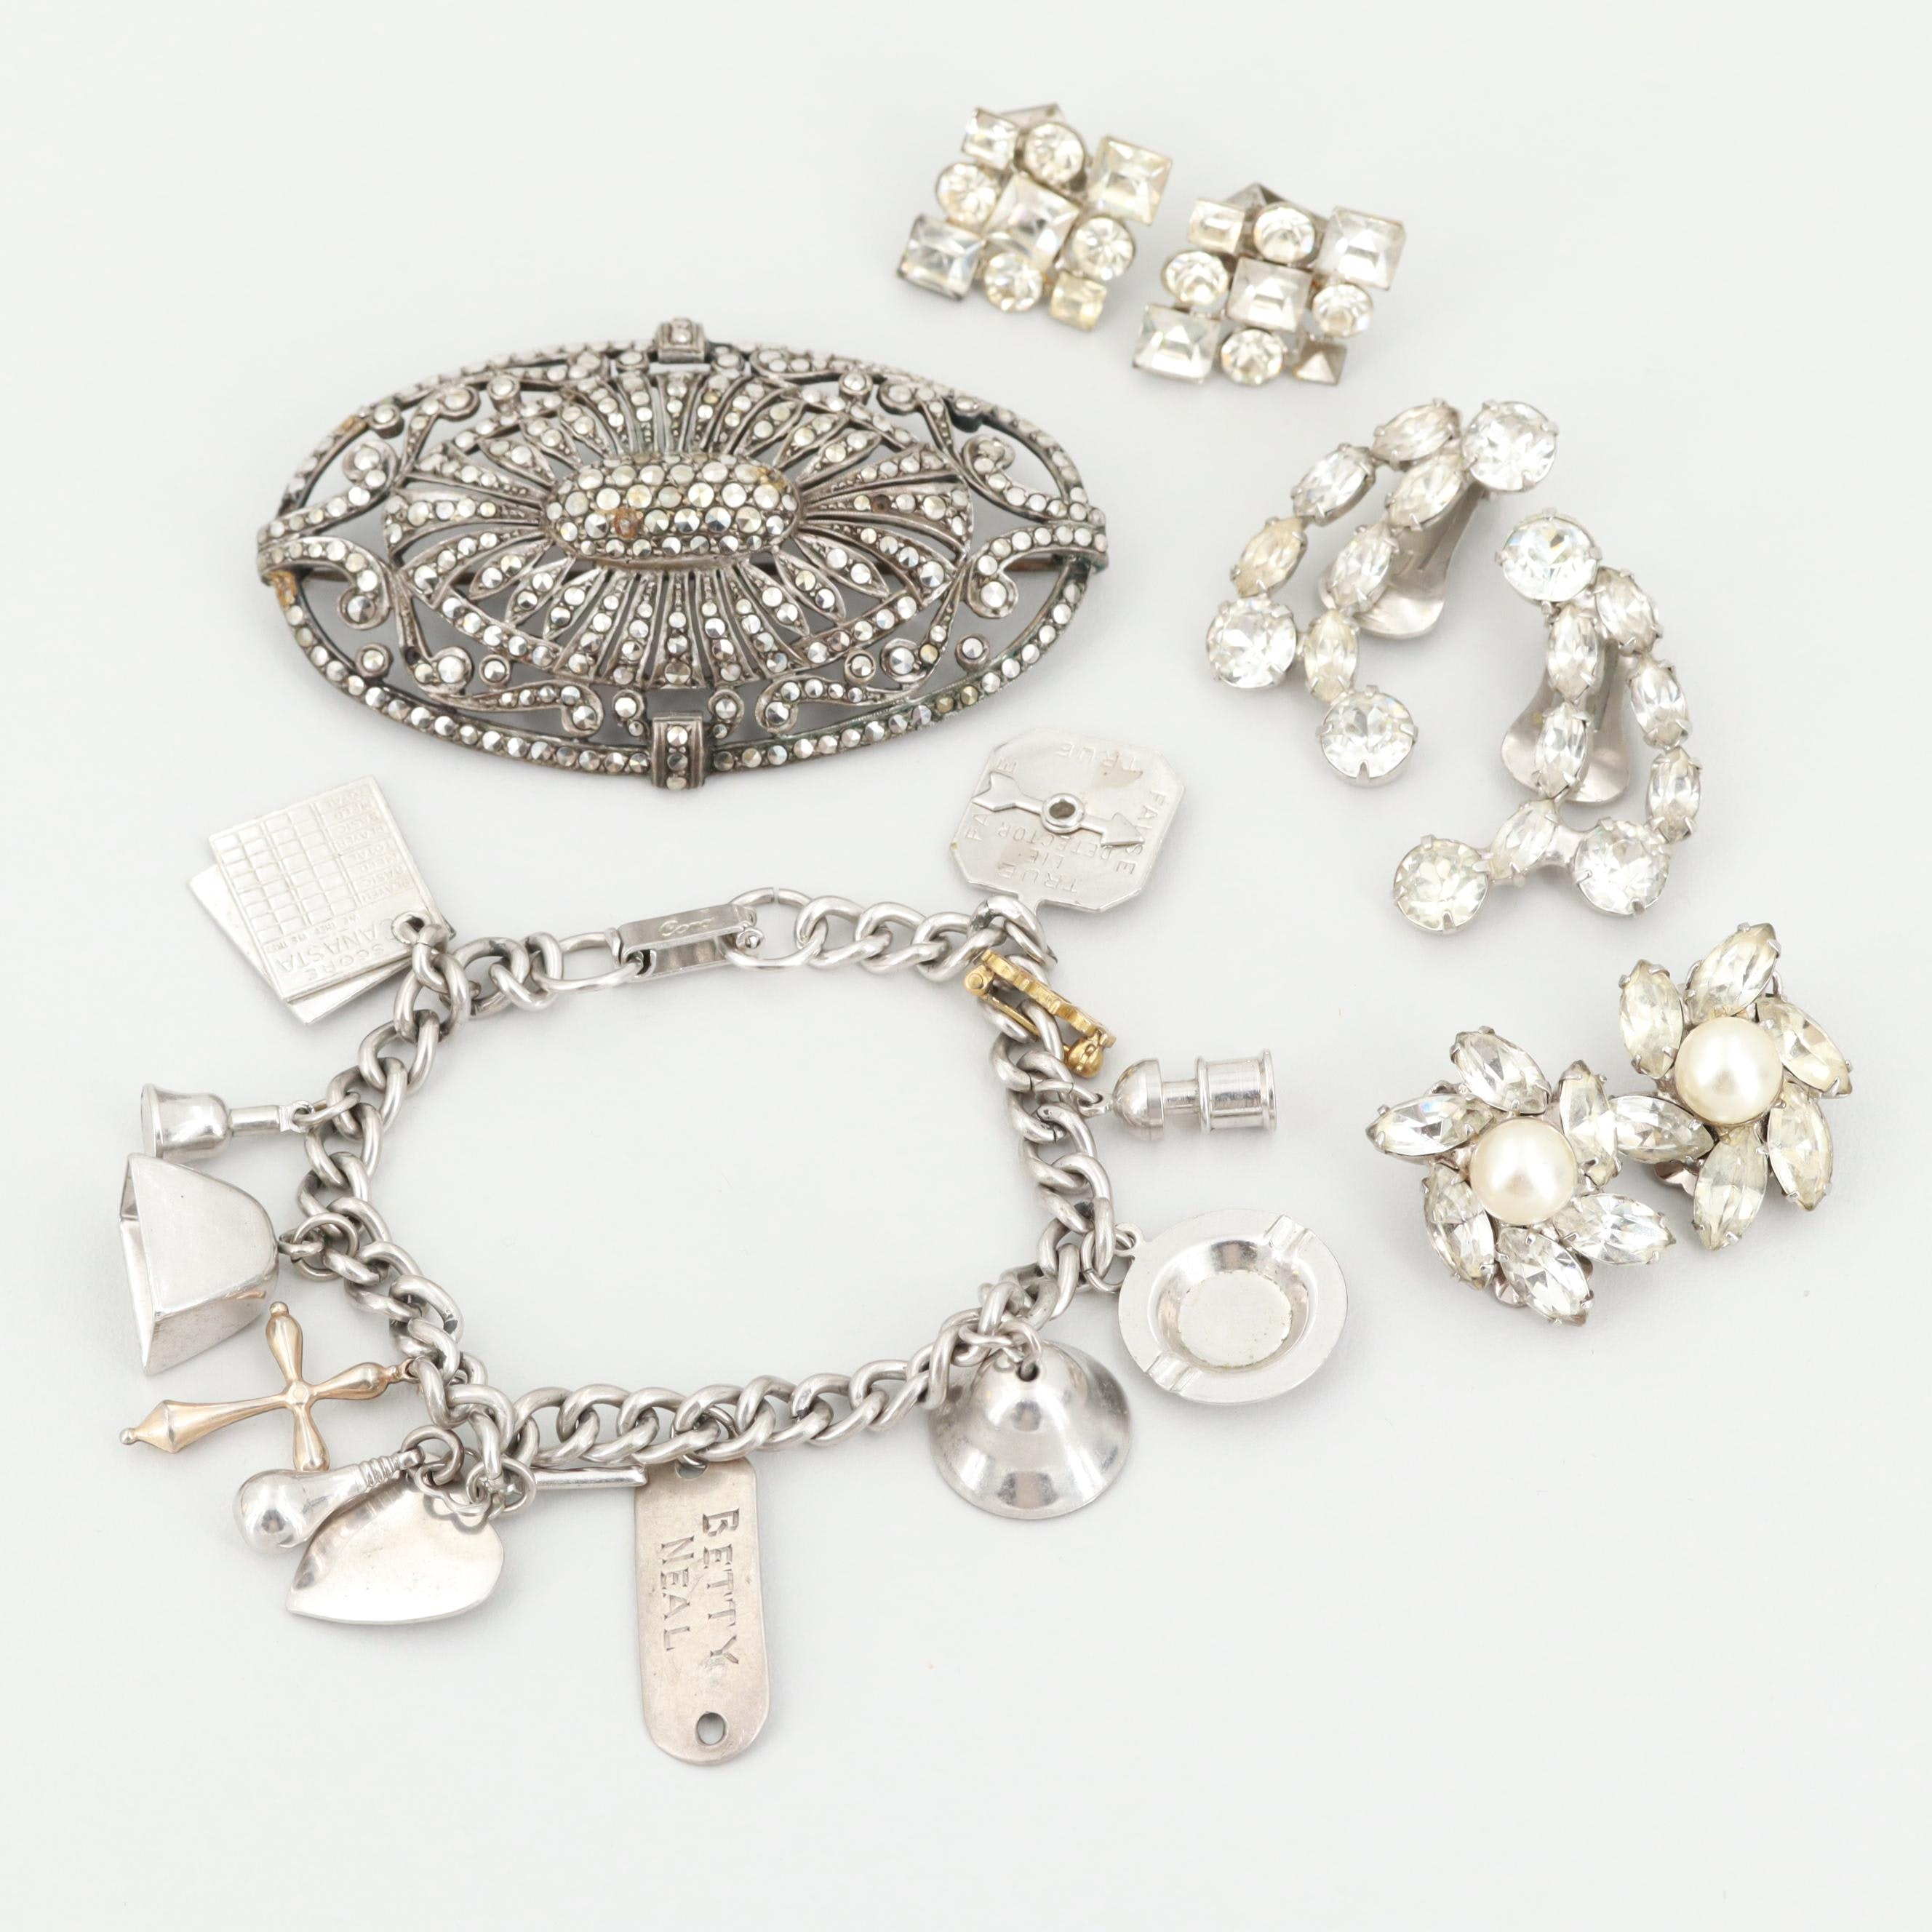 Vintage Silver Tone Glass, Marcasite and Imitation Pearl Jewelry Assortment